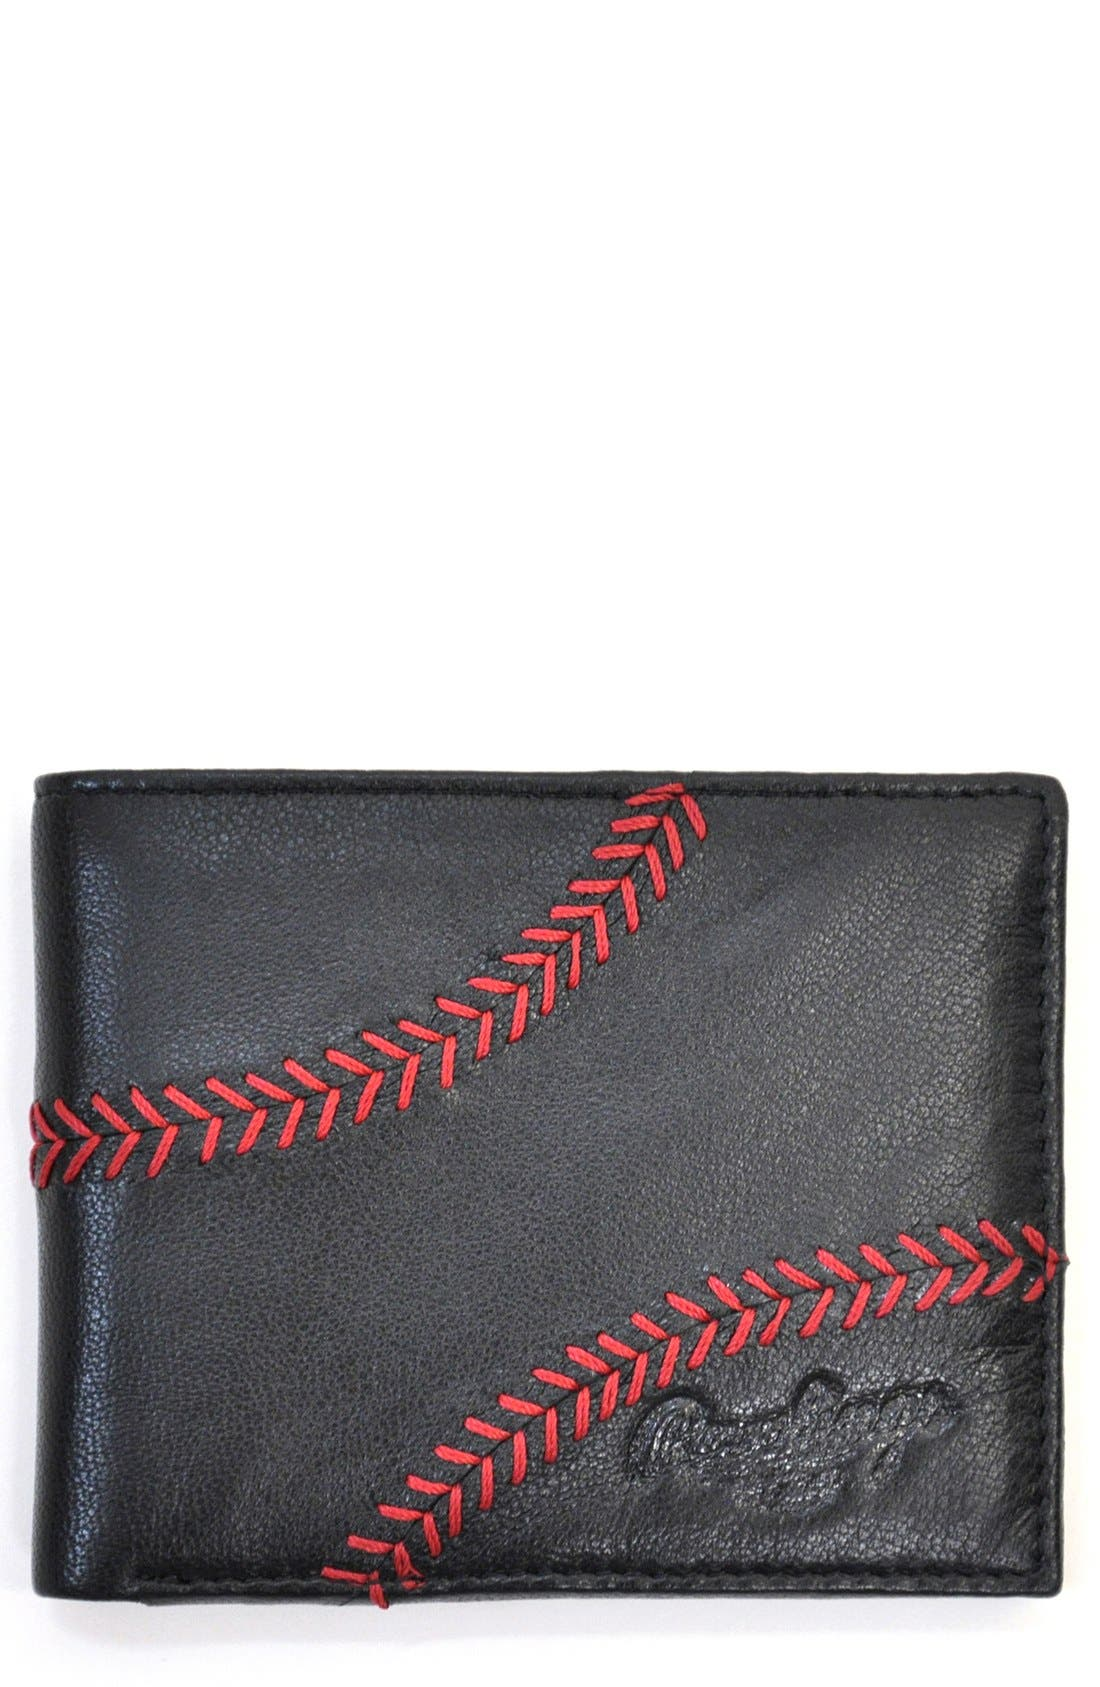 Rawlings 174 Baseball Stitch Leather Wallet Nordstrom